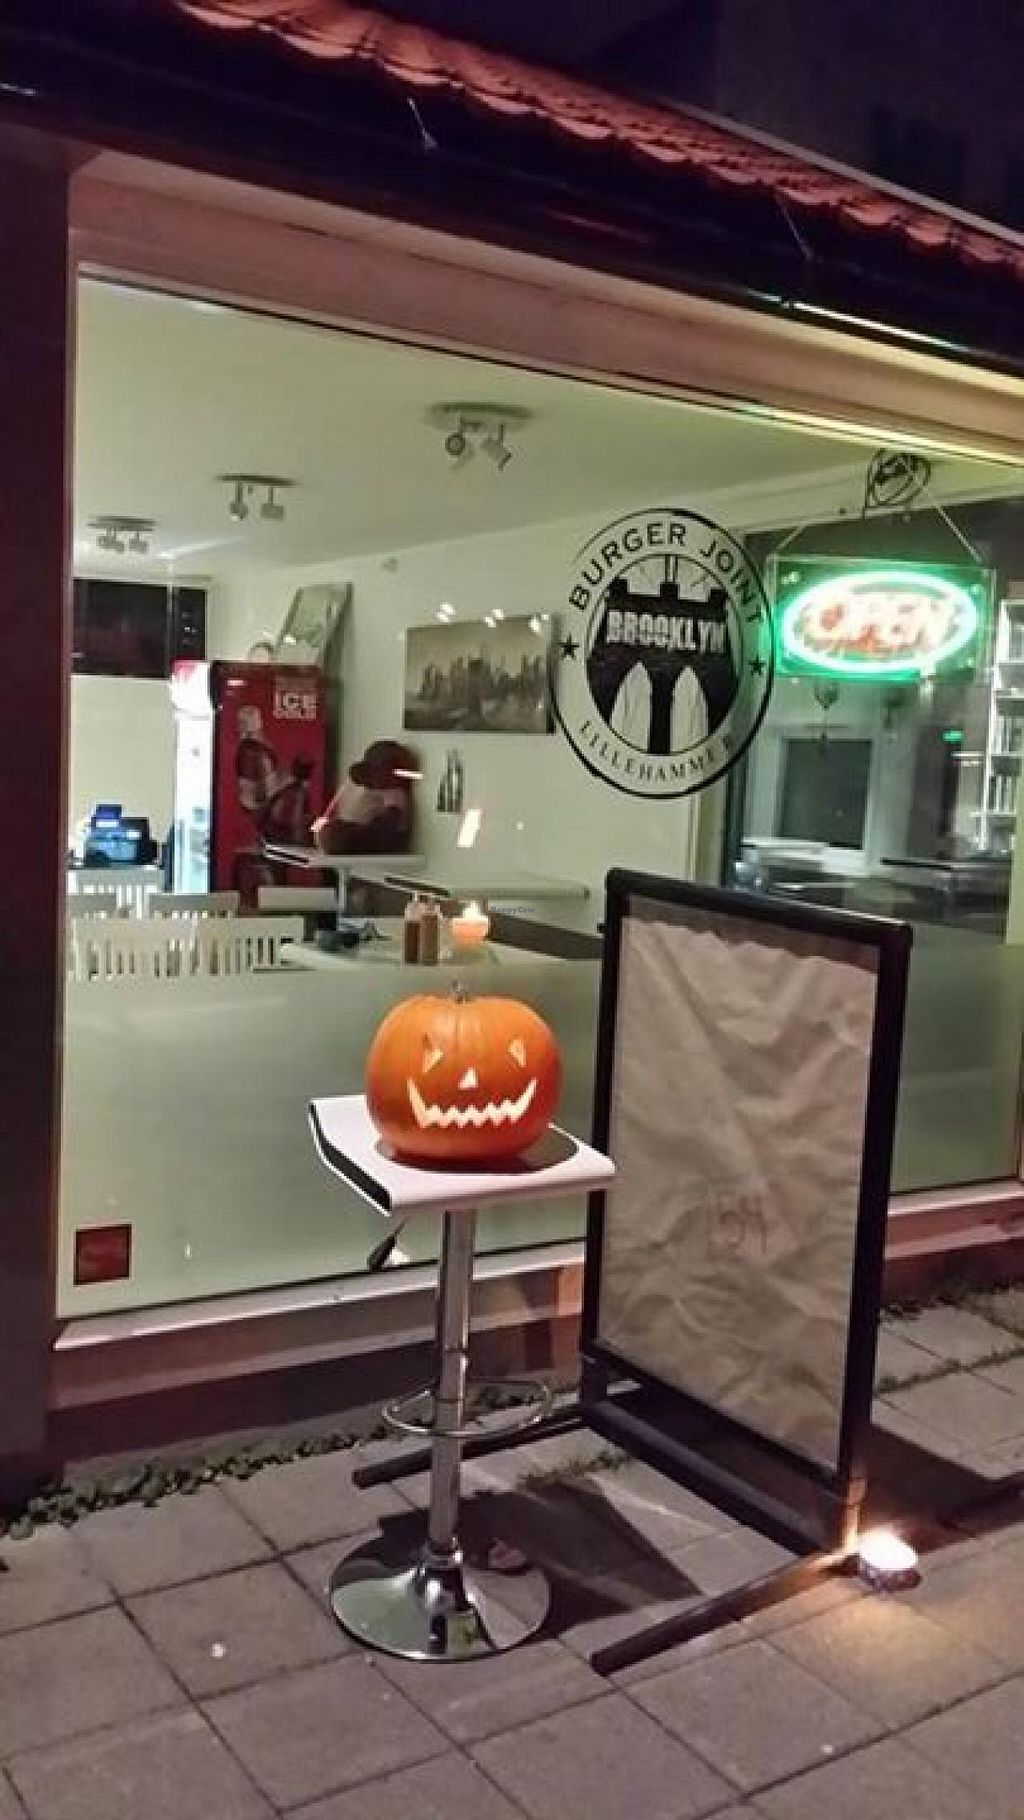 "Photo of Brooklyn Burger Joint  by <a href=""/members/profile/community"">community</a> <br/>Brooklyn Burger Bar <br/> June 5, 2015  - <a href='/contact/abuse/image/59111/104857'>Report</a>"